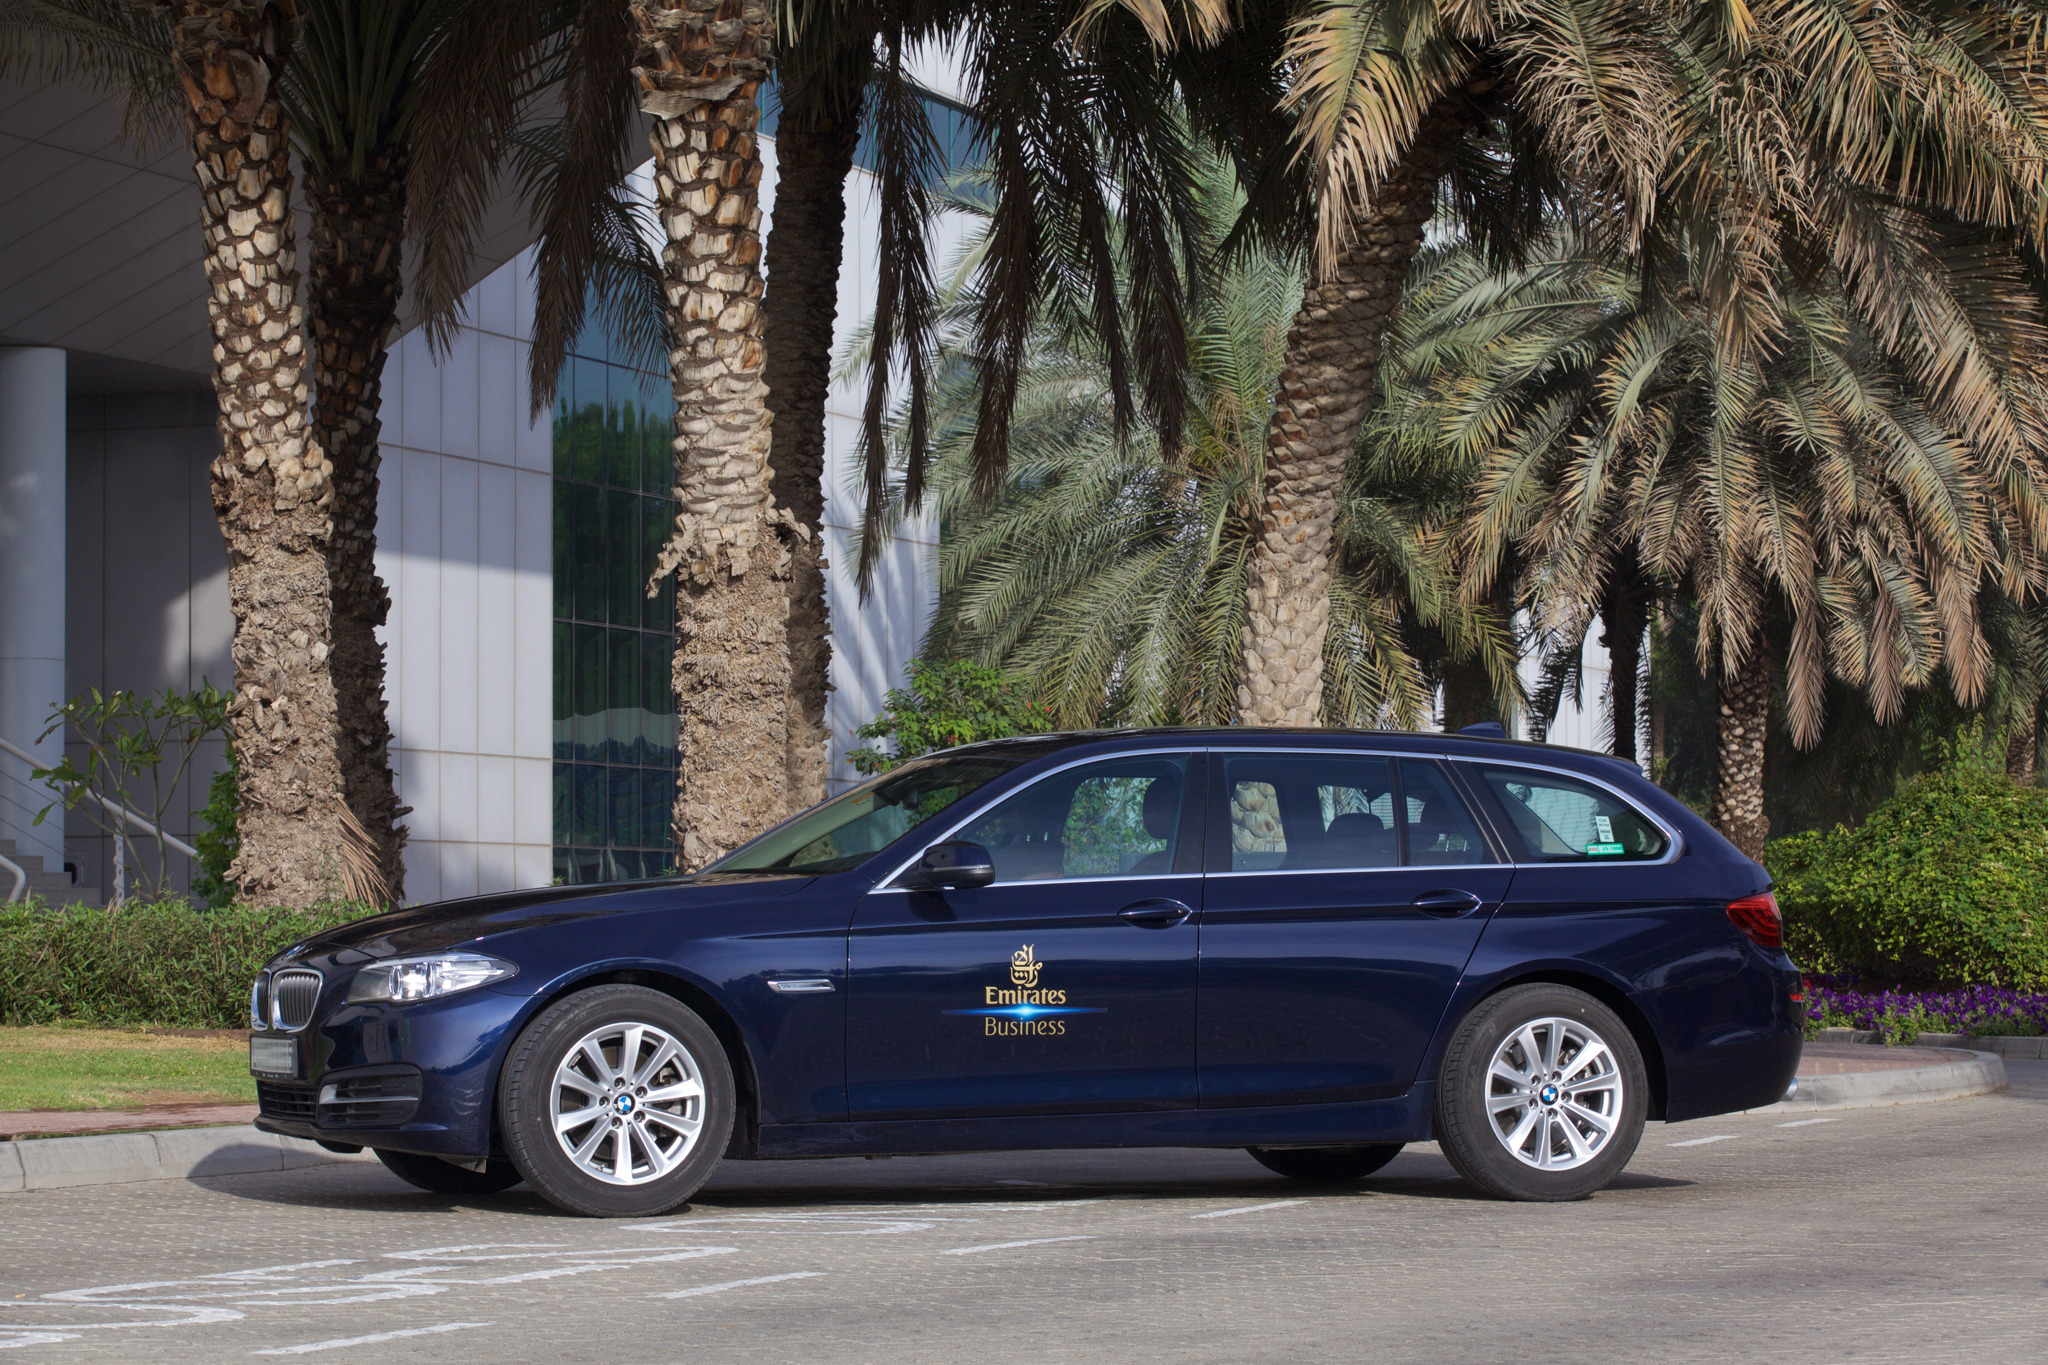 Emirates Partners With Bmw Group For Its New Fleet Of Chauffeur